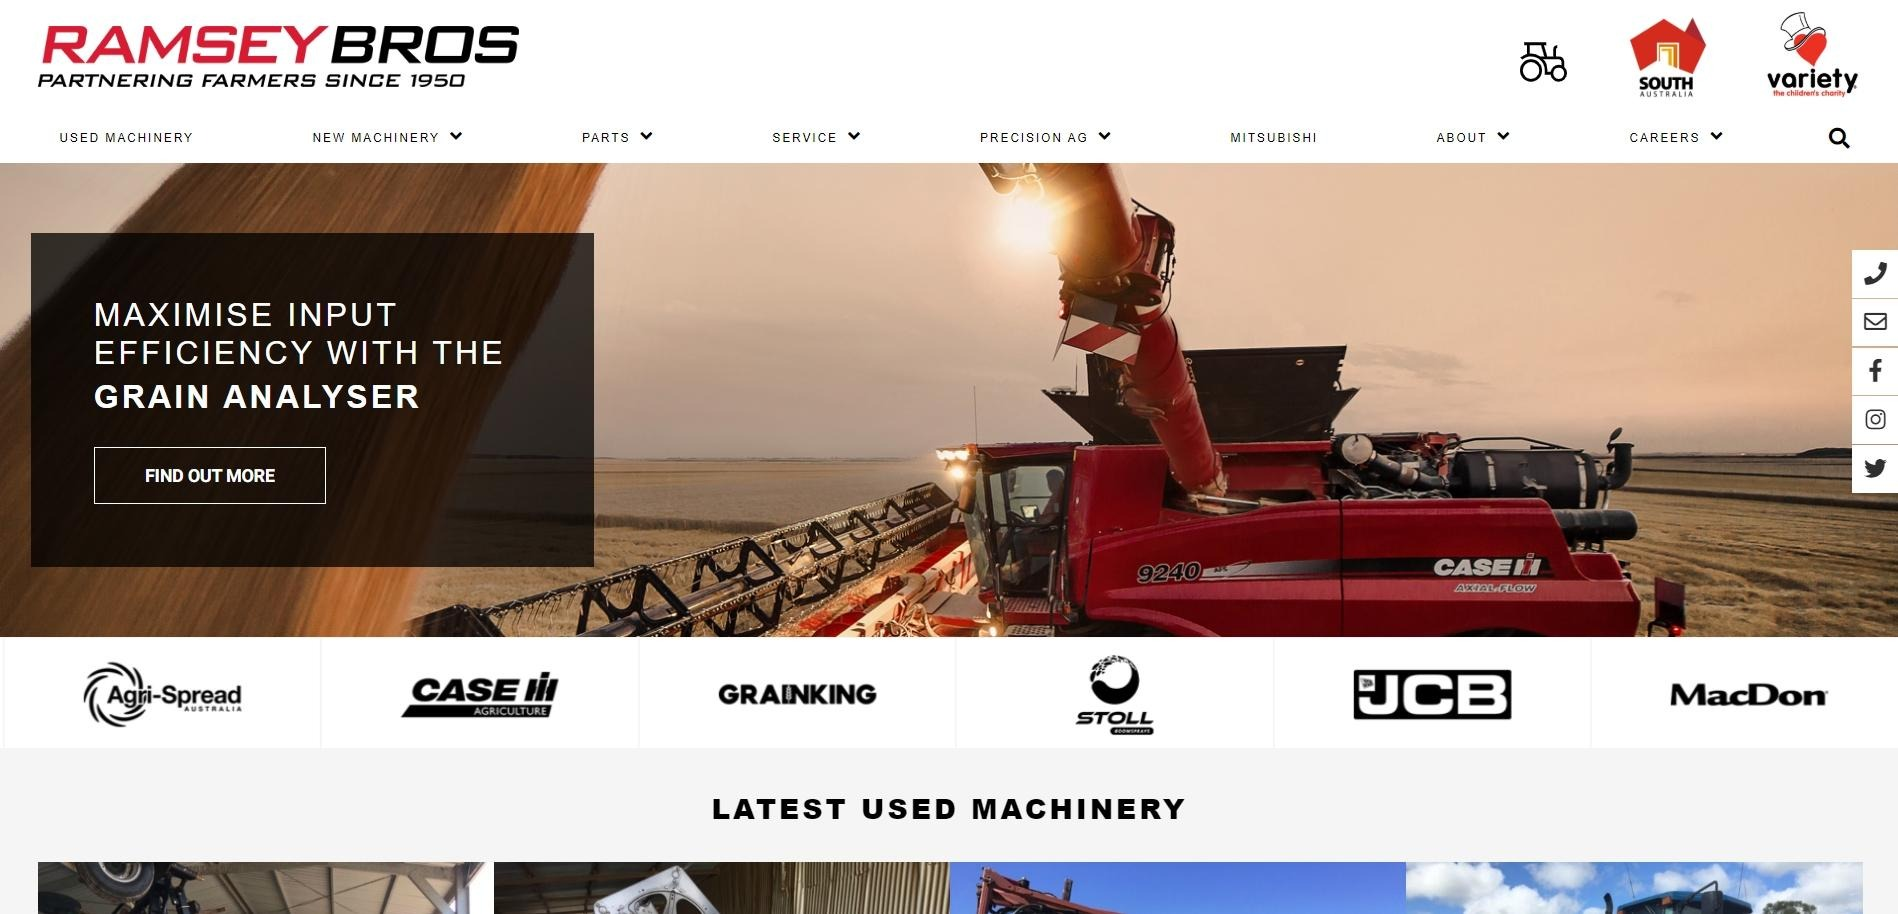 Ramsey Bros Website Redesign